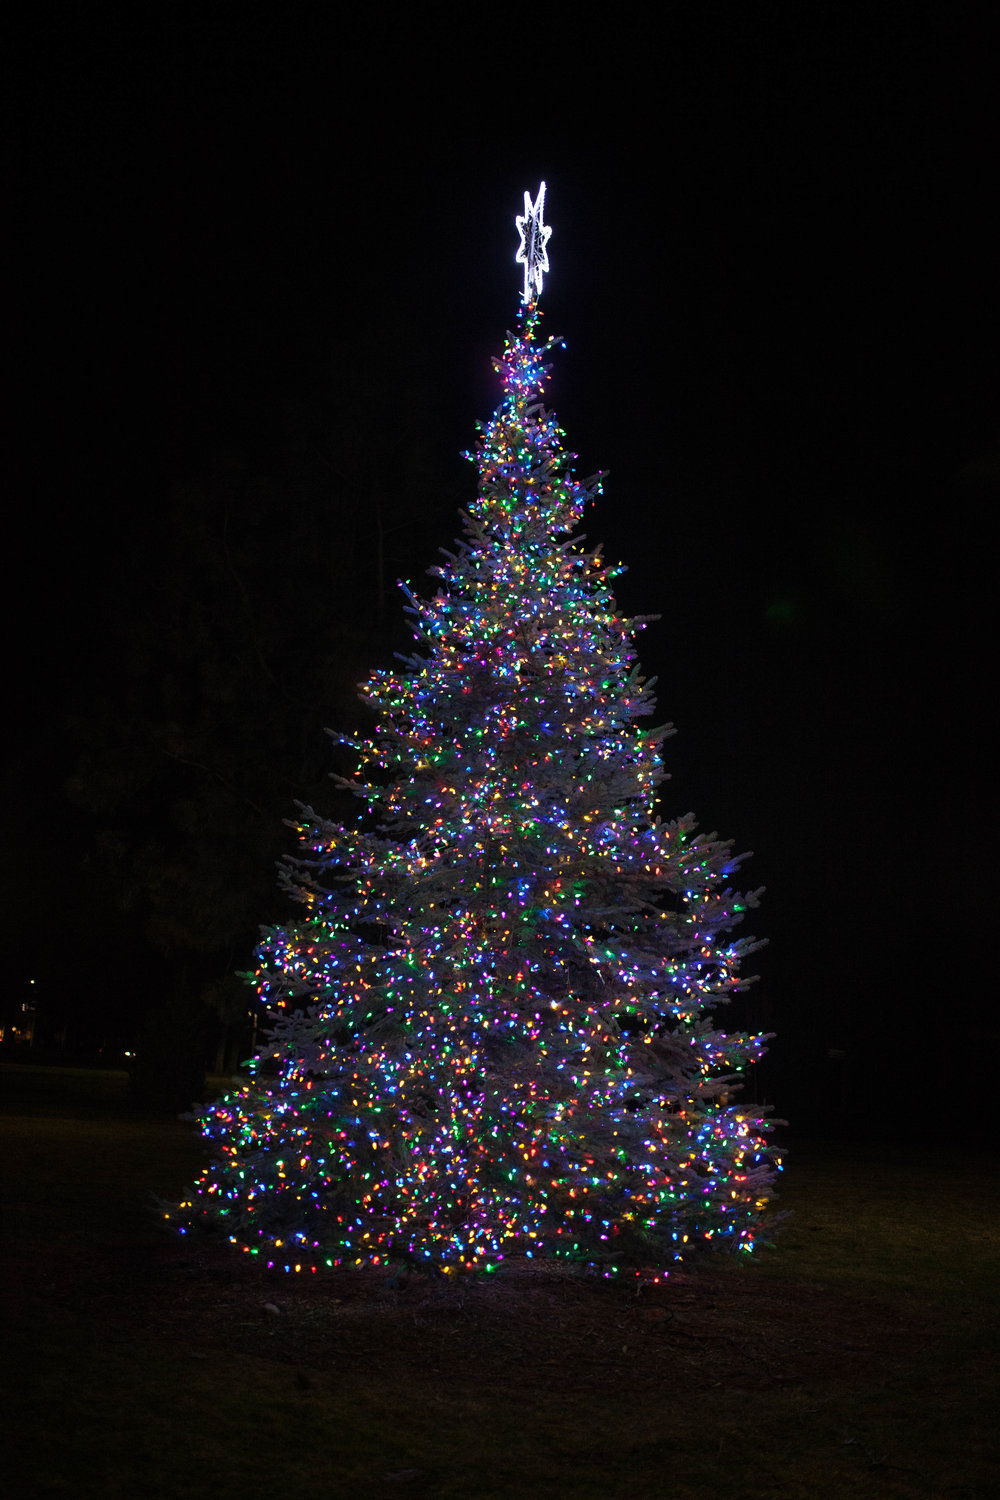 The Christmas tree was lit to signify the beginning of the Christmas season and cheer students up as finals approaches. Photo by Domenica Cooke-Tassone.